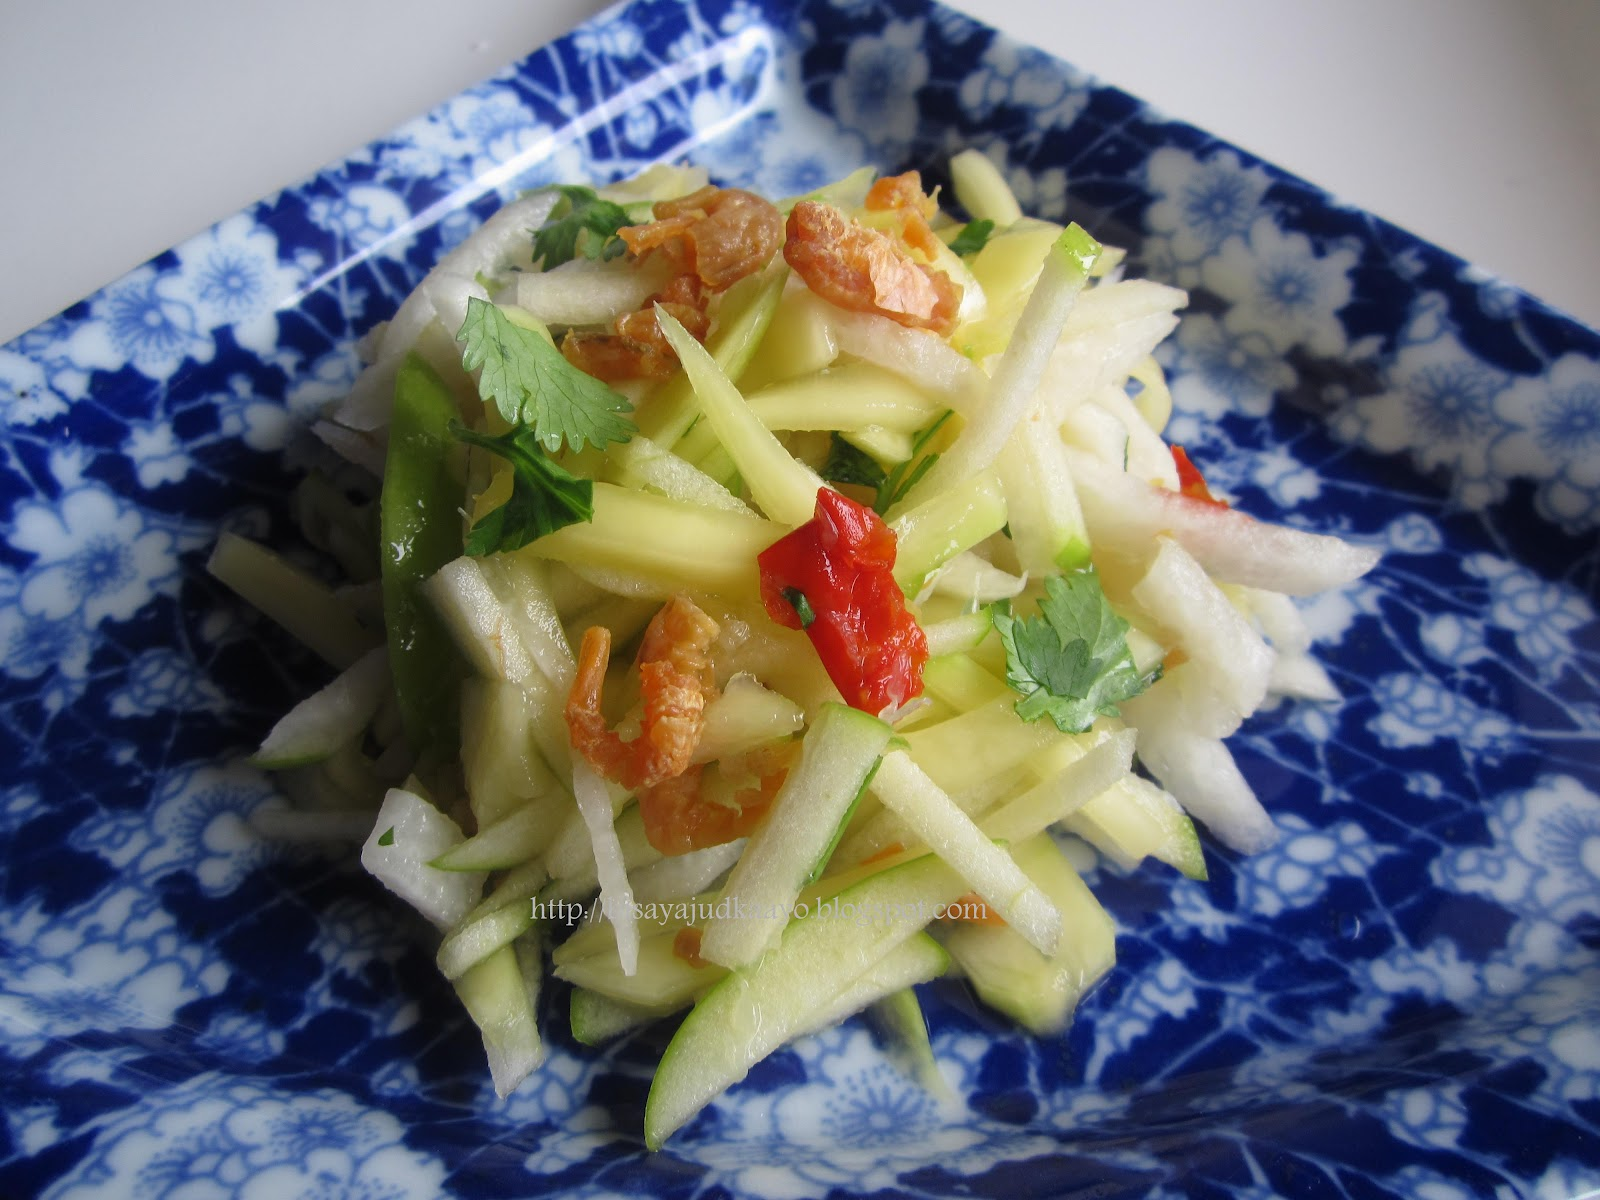 Crispy Fish And Green Mango Salad Recipes — Dishmaps